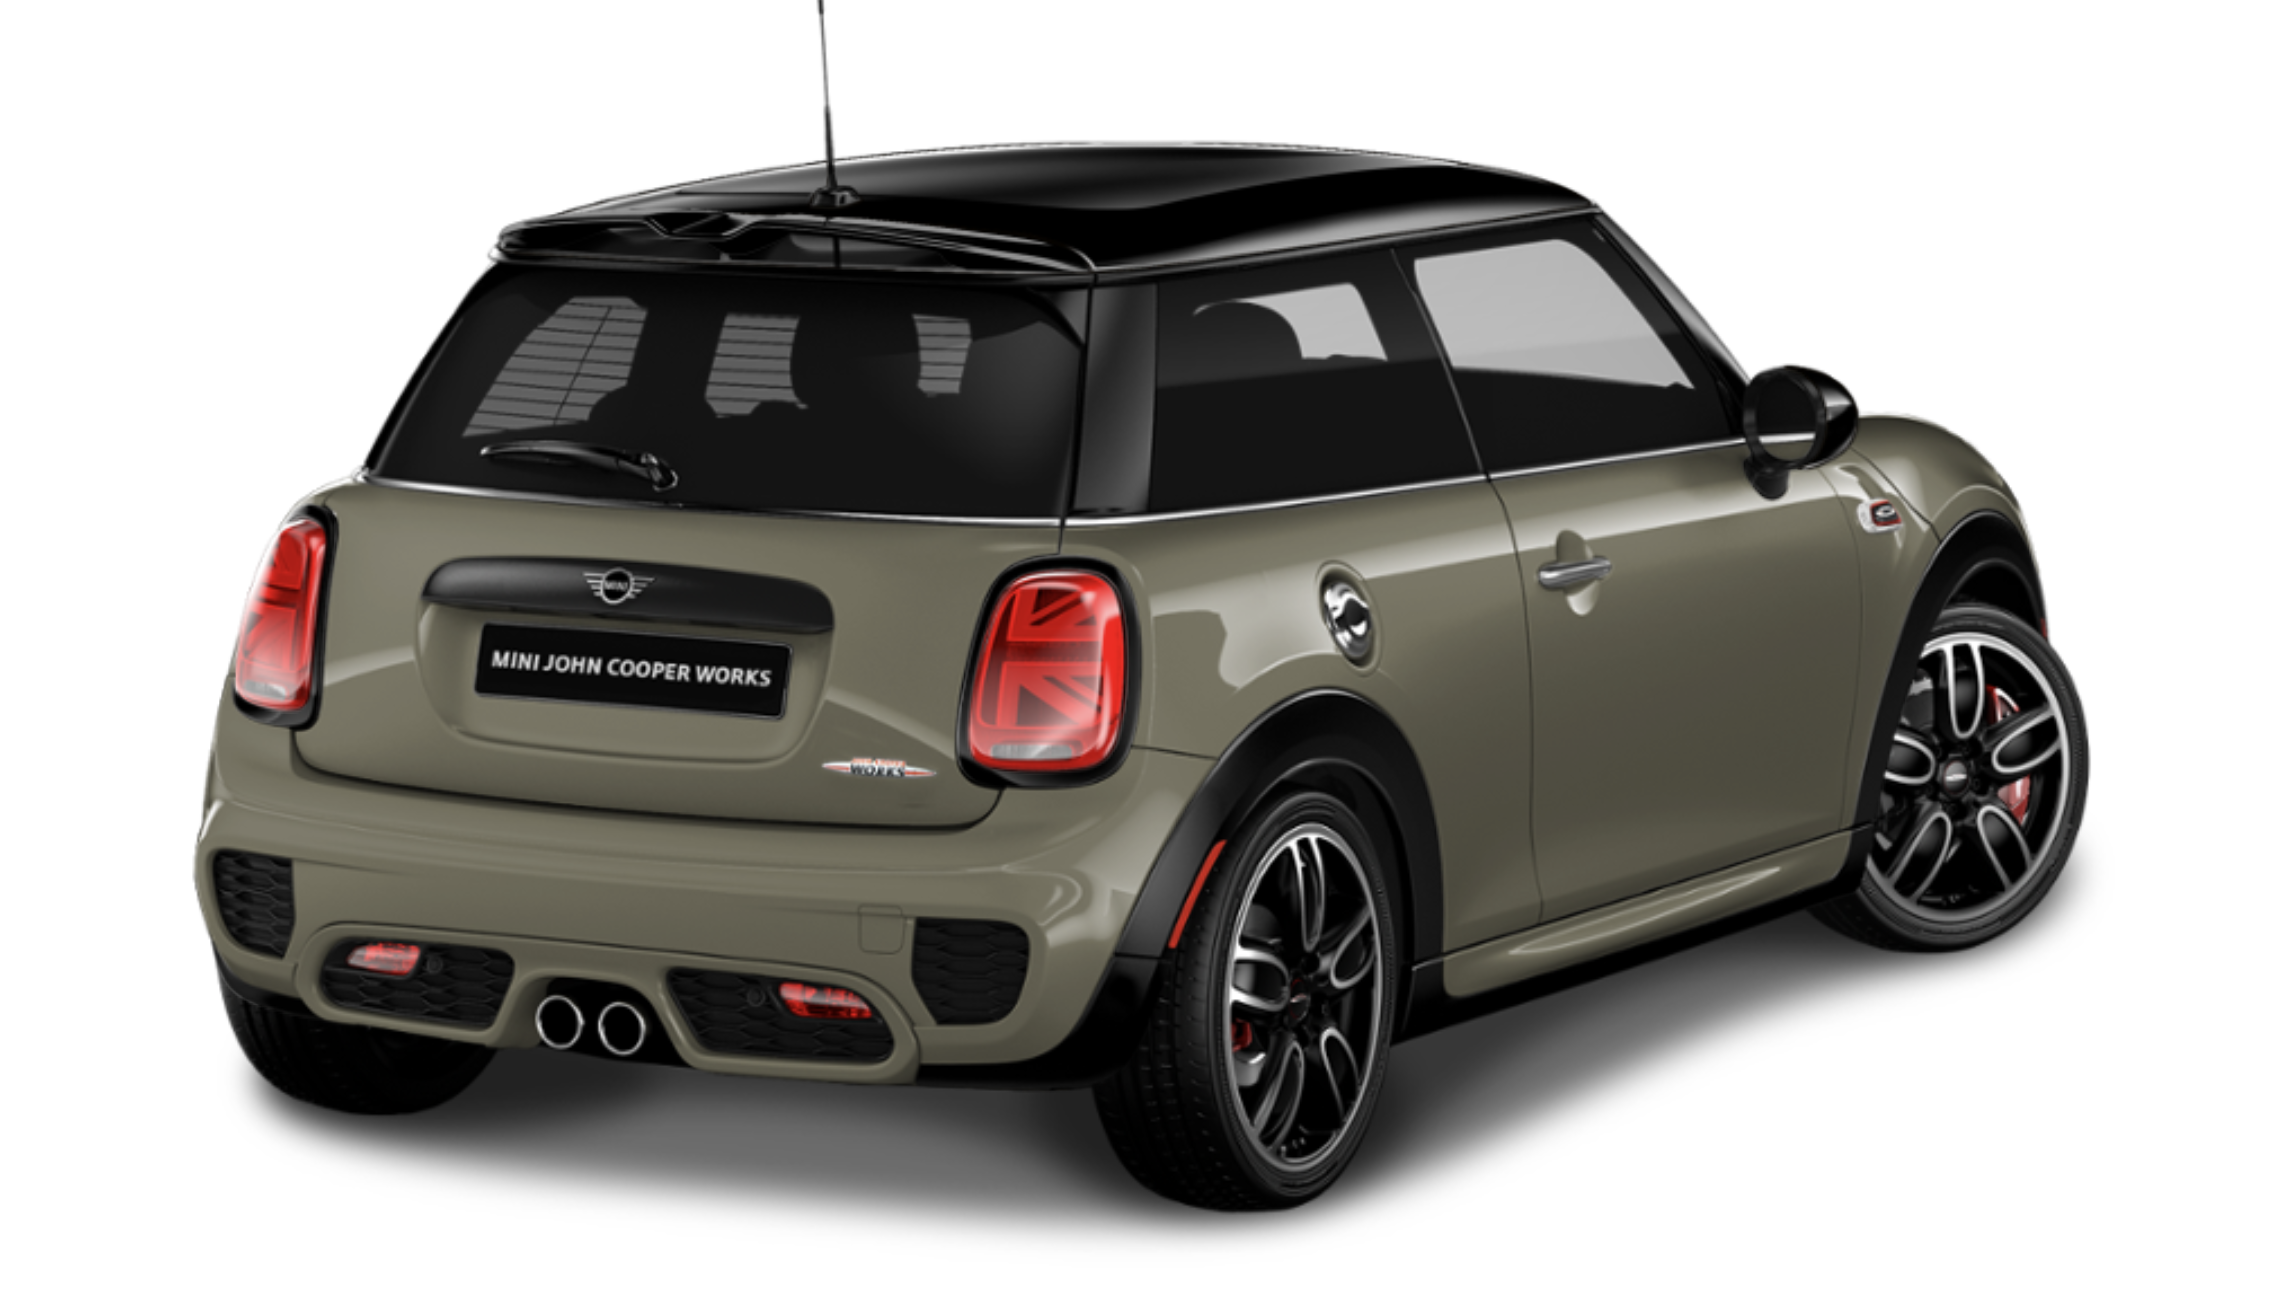 Mini Cooper Usa >> The Mini Usa Configurator Is Now Live With New Ordering Tiers